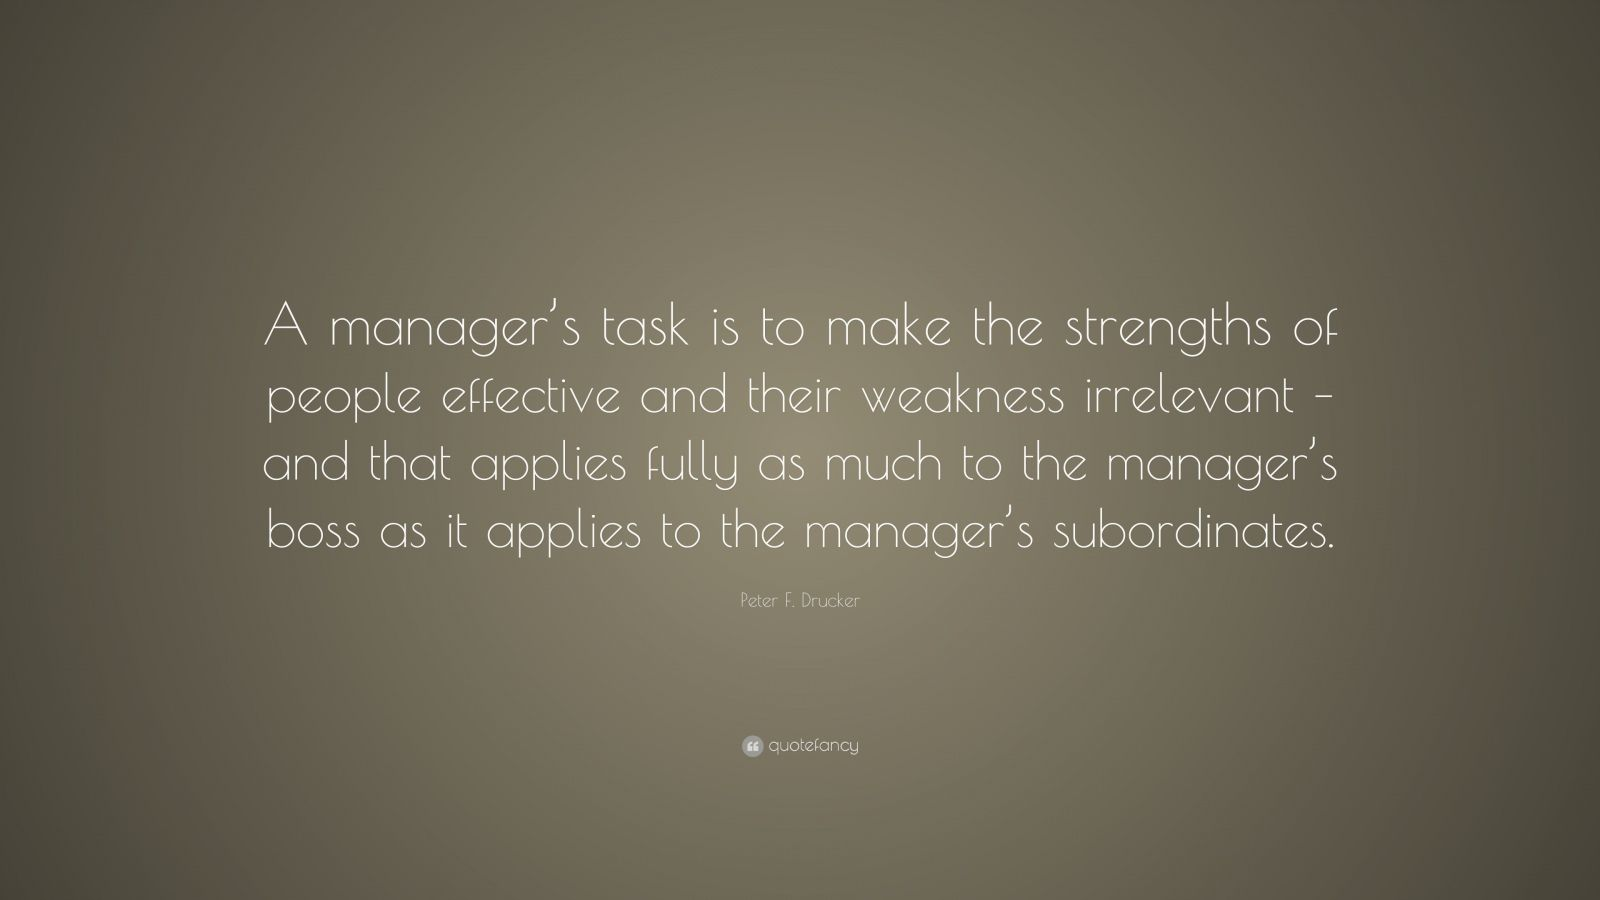 """Peter F. Drucker Quote: """"A manager's task is to make the strengths of people effective and their weakness irrelevant – and that applies fully as much to the manager's boss as it applies to the manager's subordinates."""""""